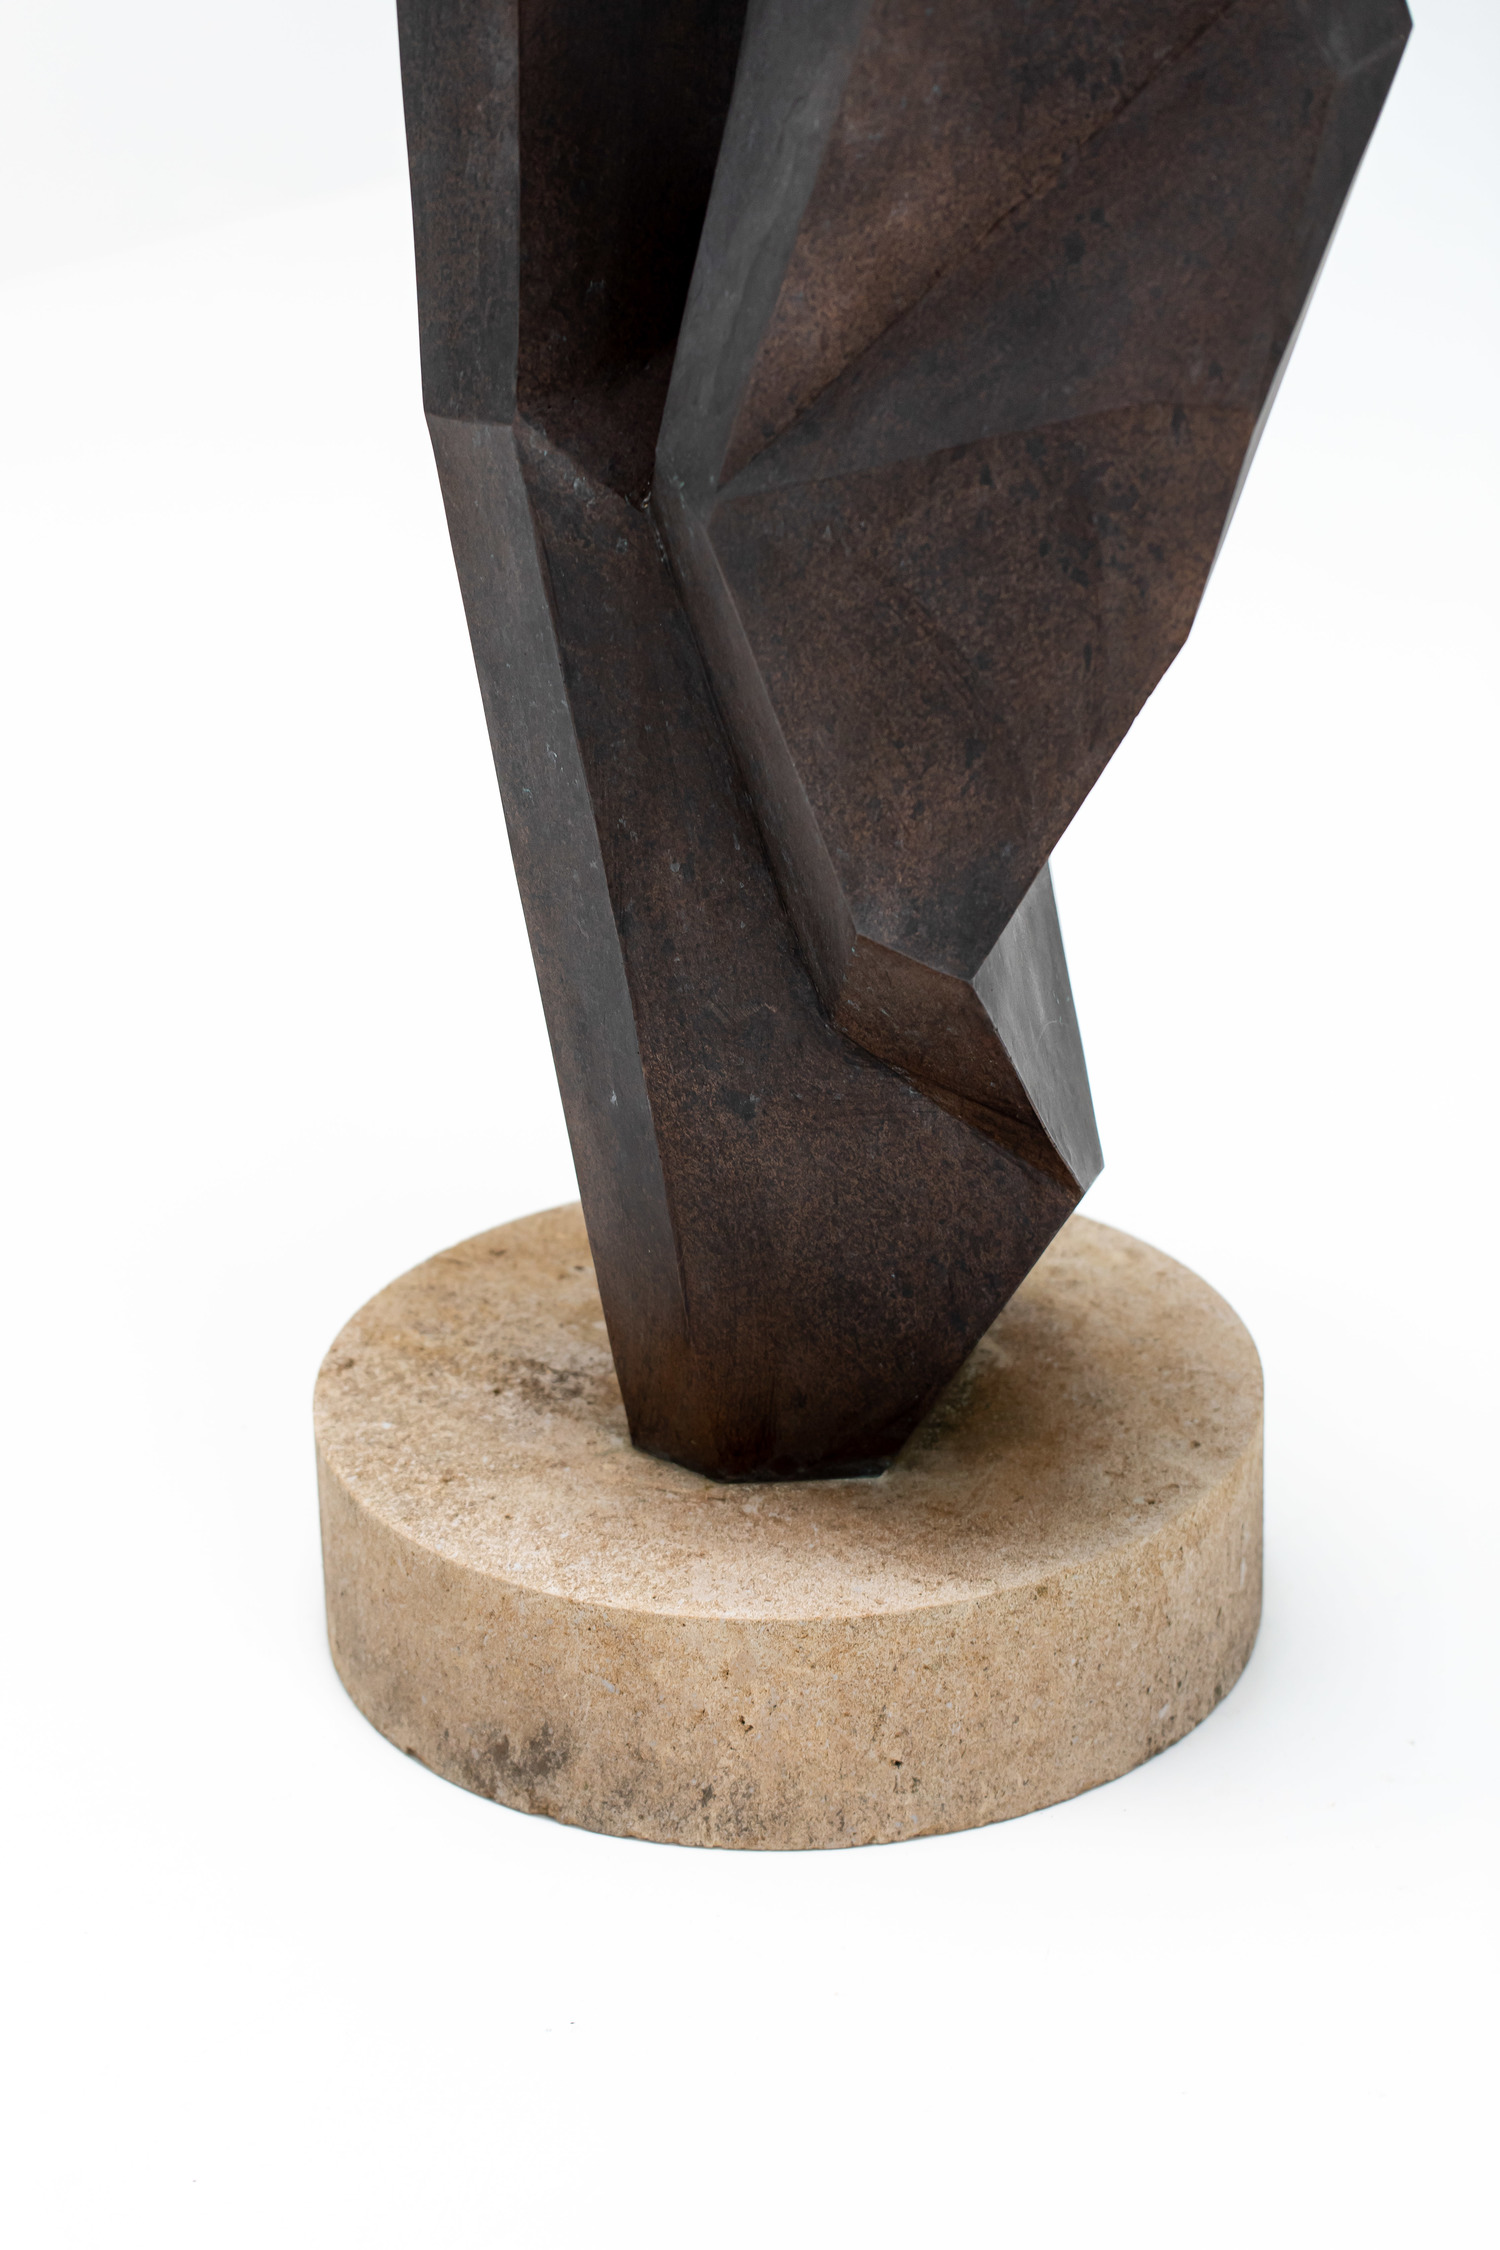 Steffen Christensen Sculpture